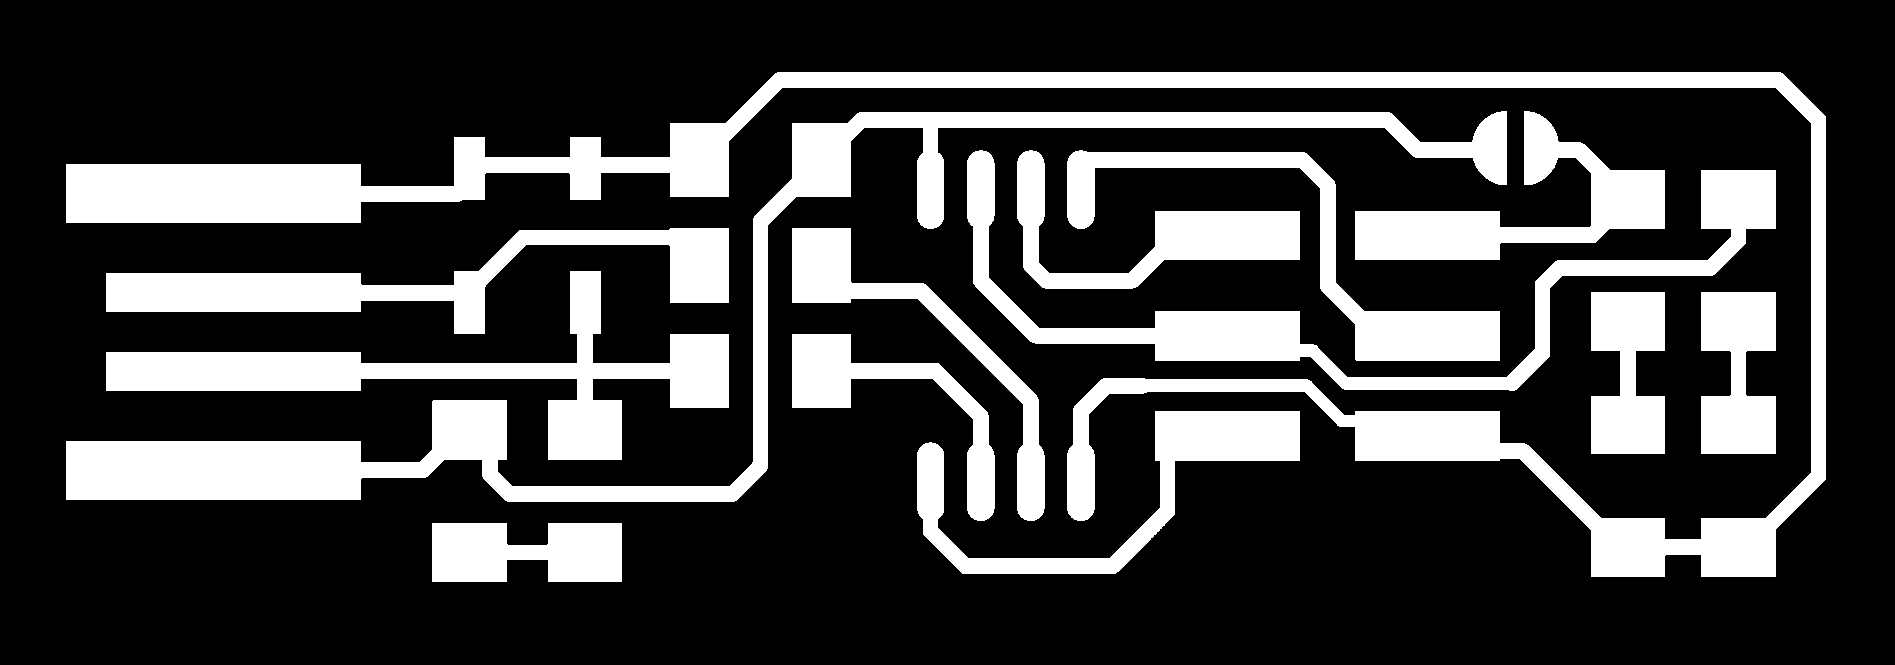 Traces file for FabTinyISP